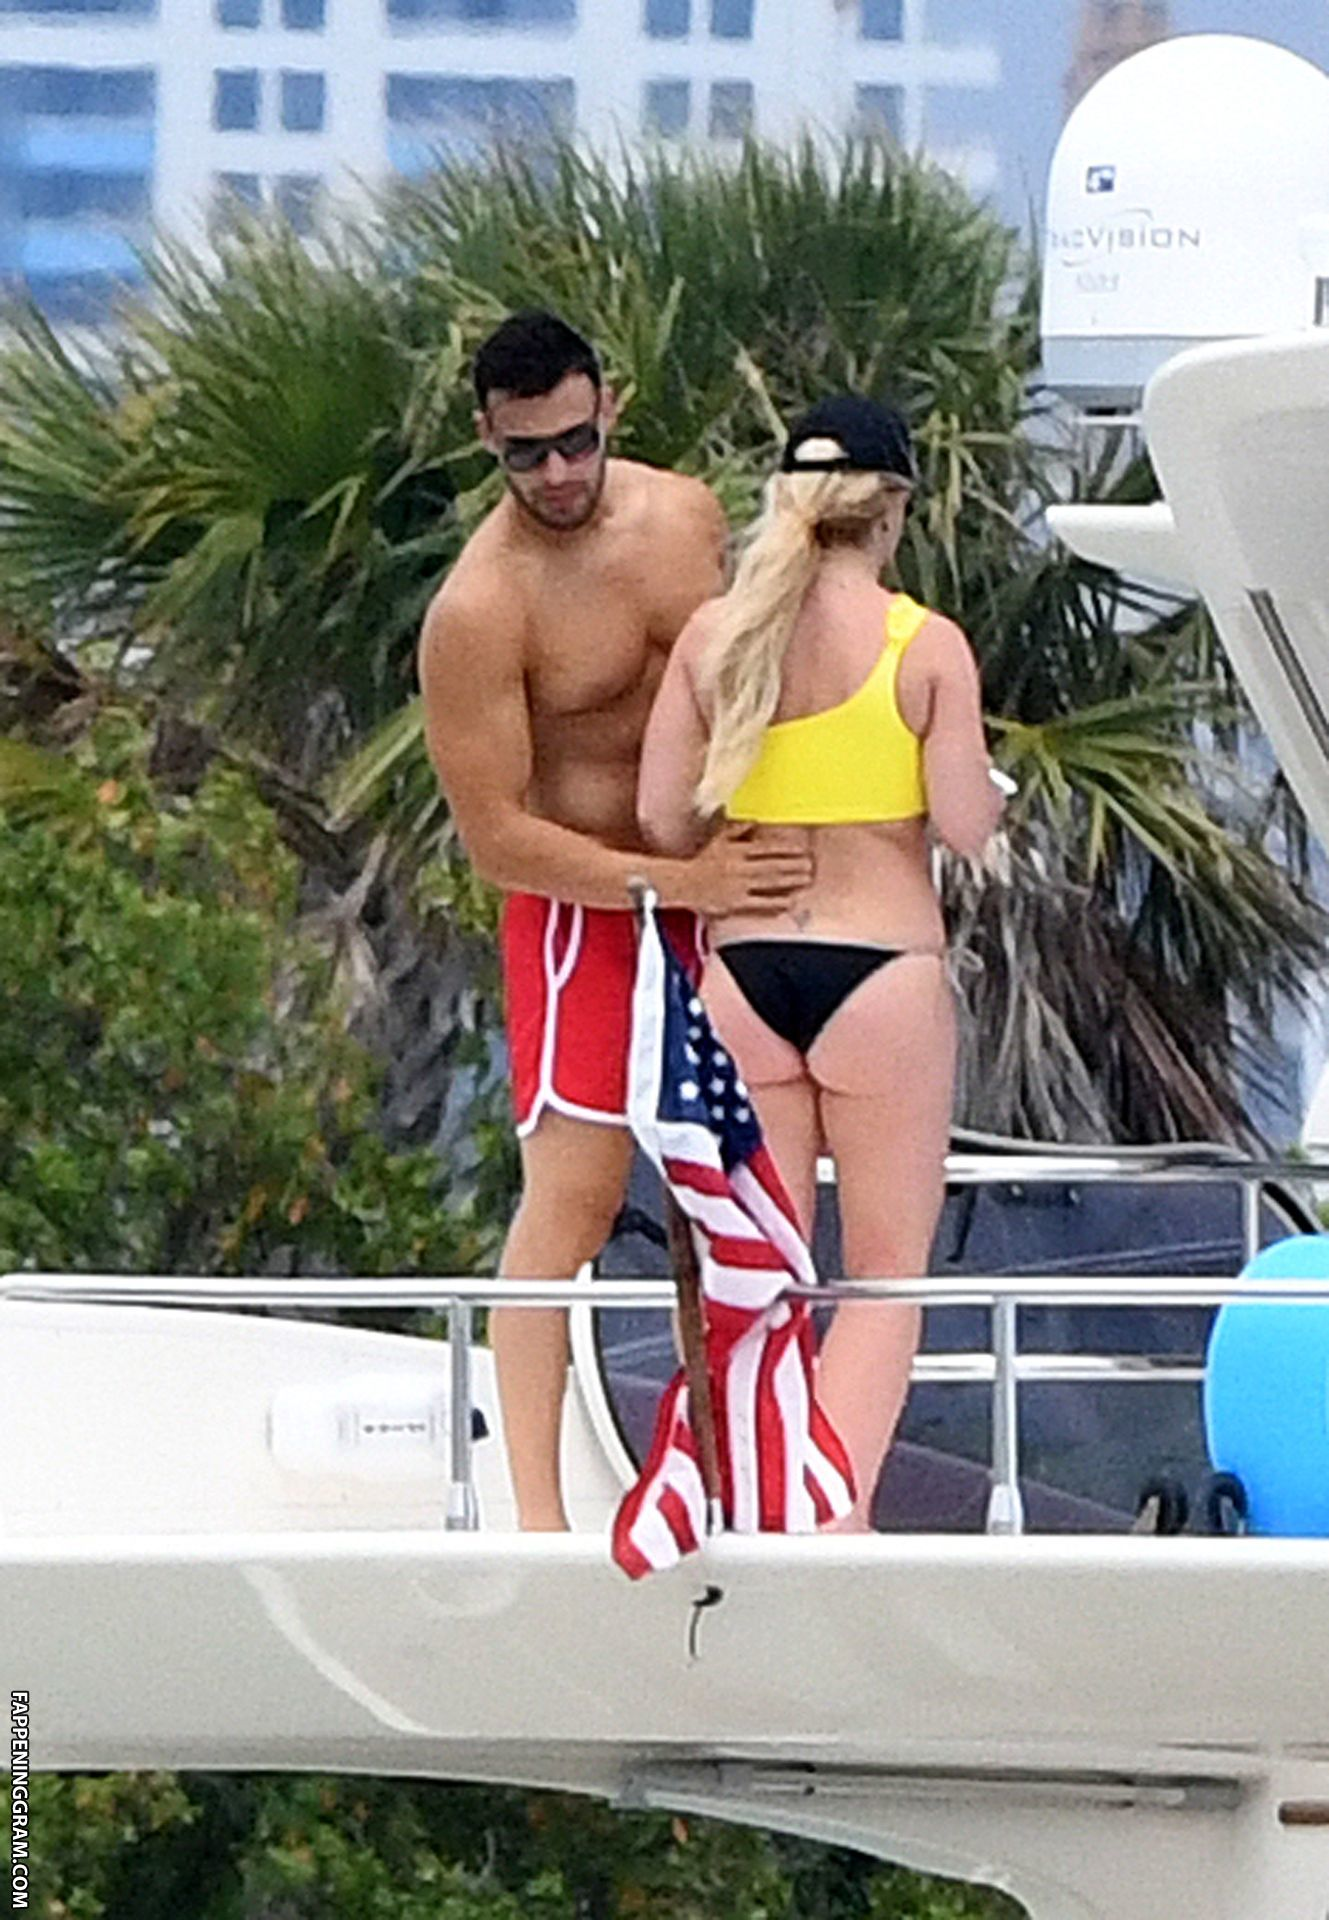 Britney Spears Nude Photos (UPDATED 2020) - Page 2 of 2